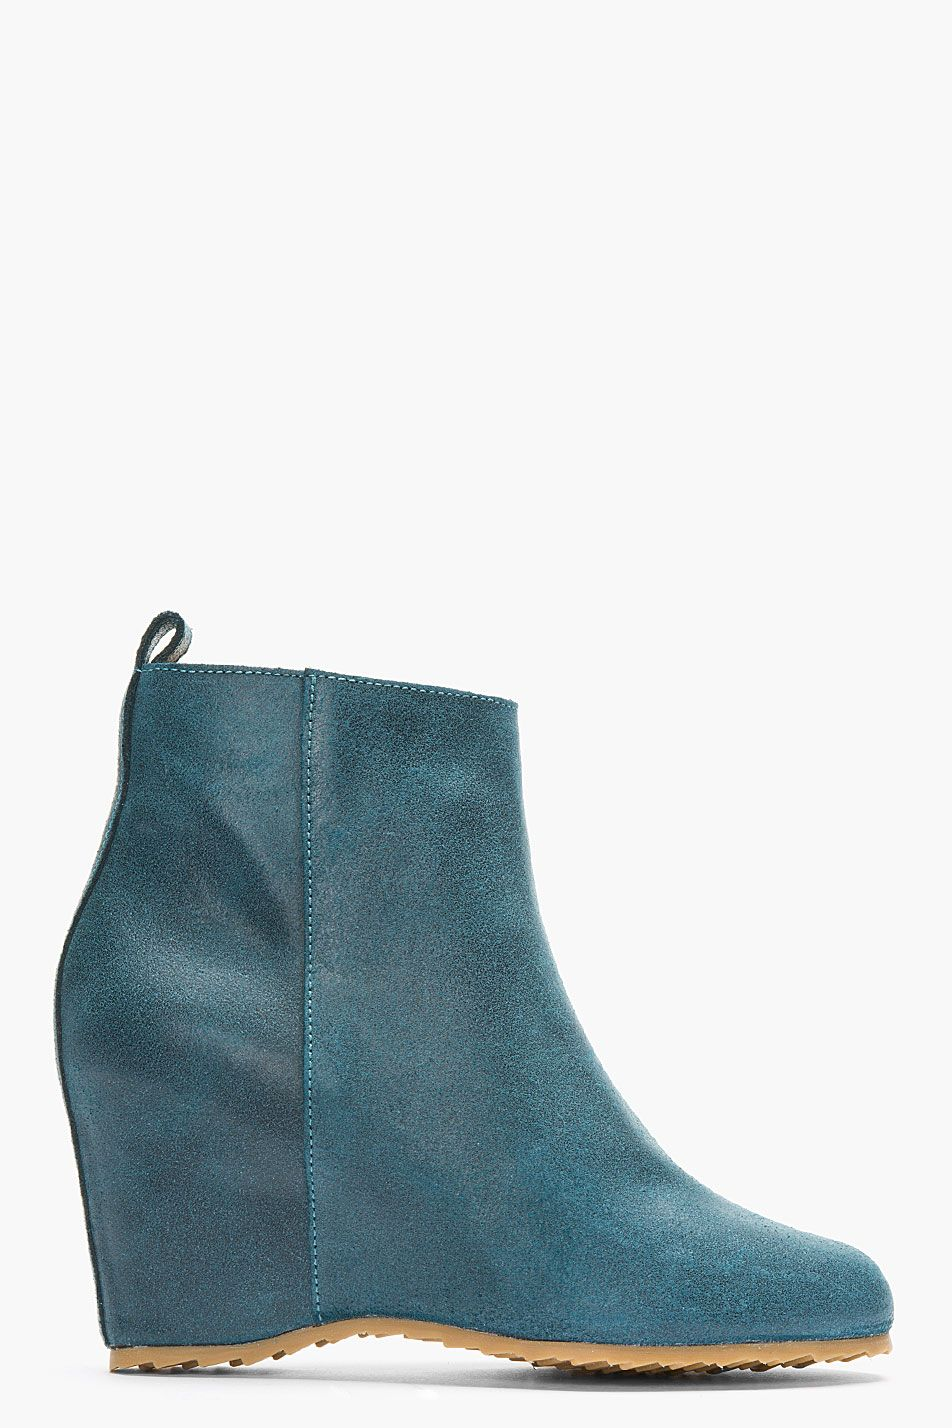 bdb704e4112 TEAL WAXED SUEDE WEDGE BOOTS